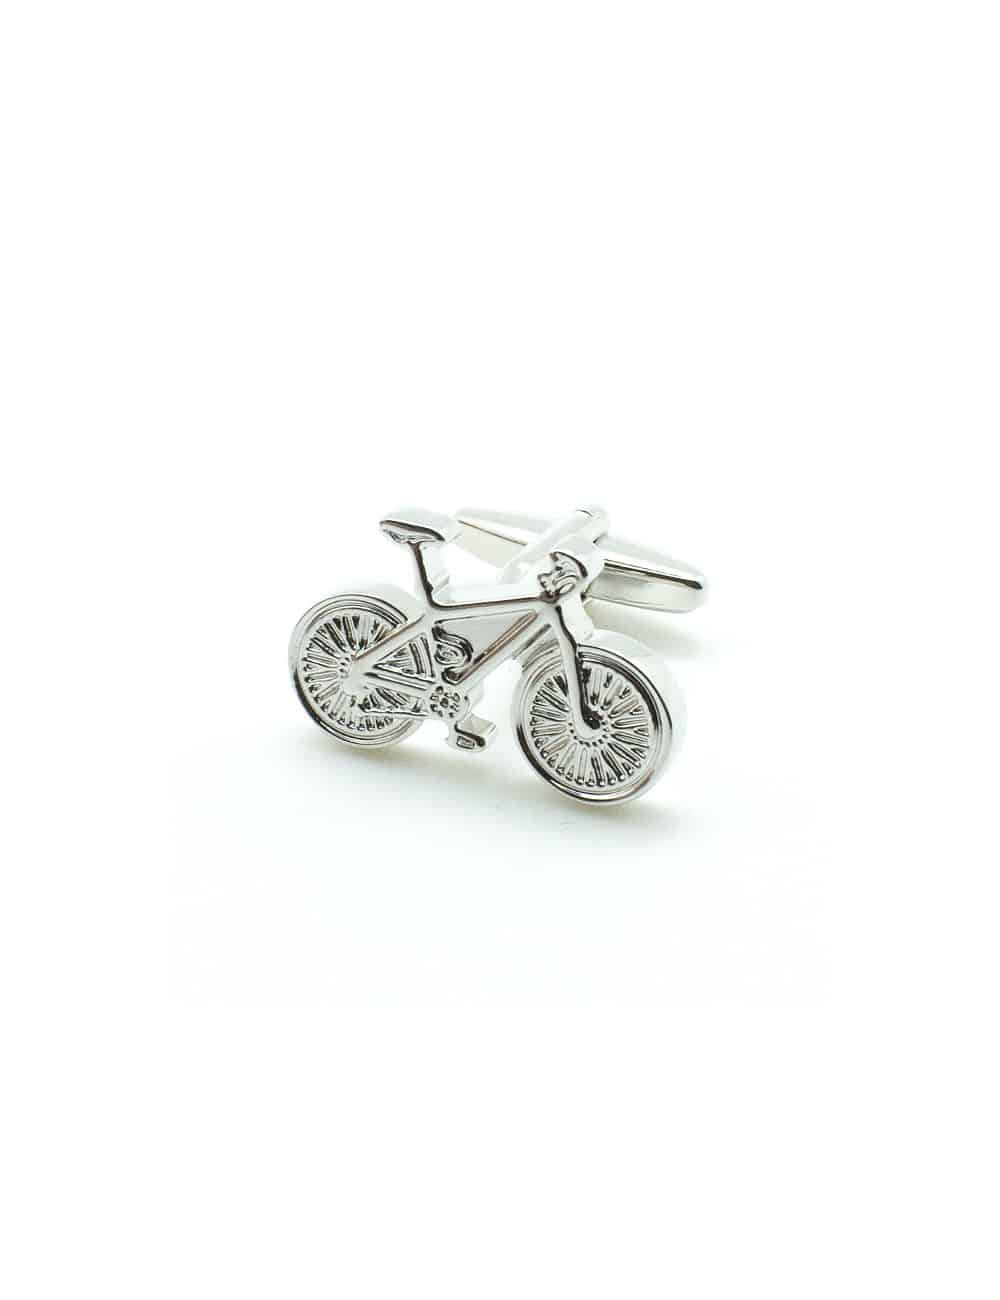 Silver Racing Bicycle Cufflink 0107-004